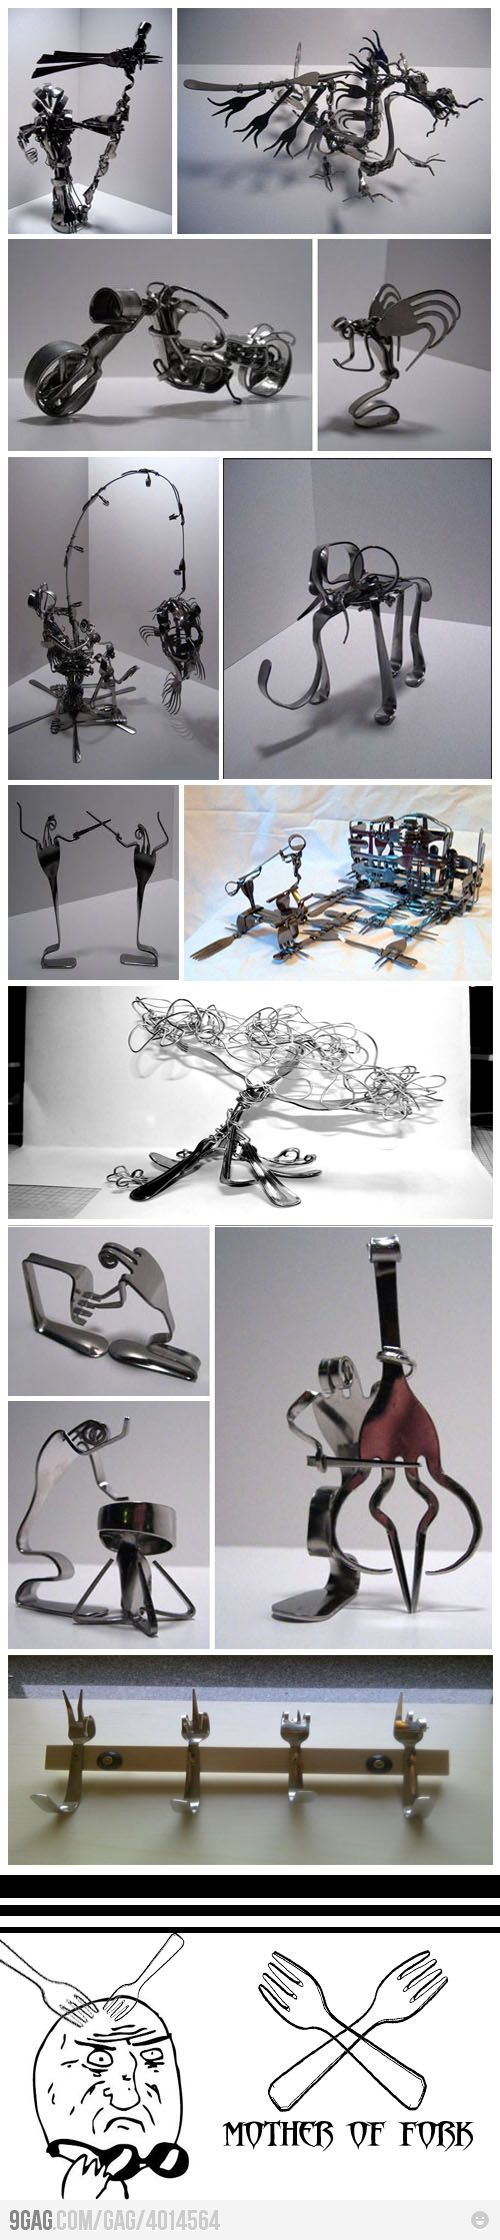 forks - I can't imagine the talent (and strength!) it takes to make these shapes based on the little bit I've tried